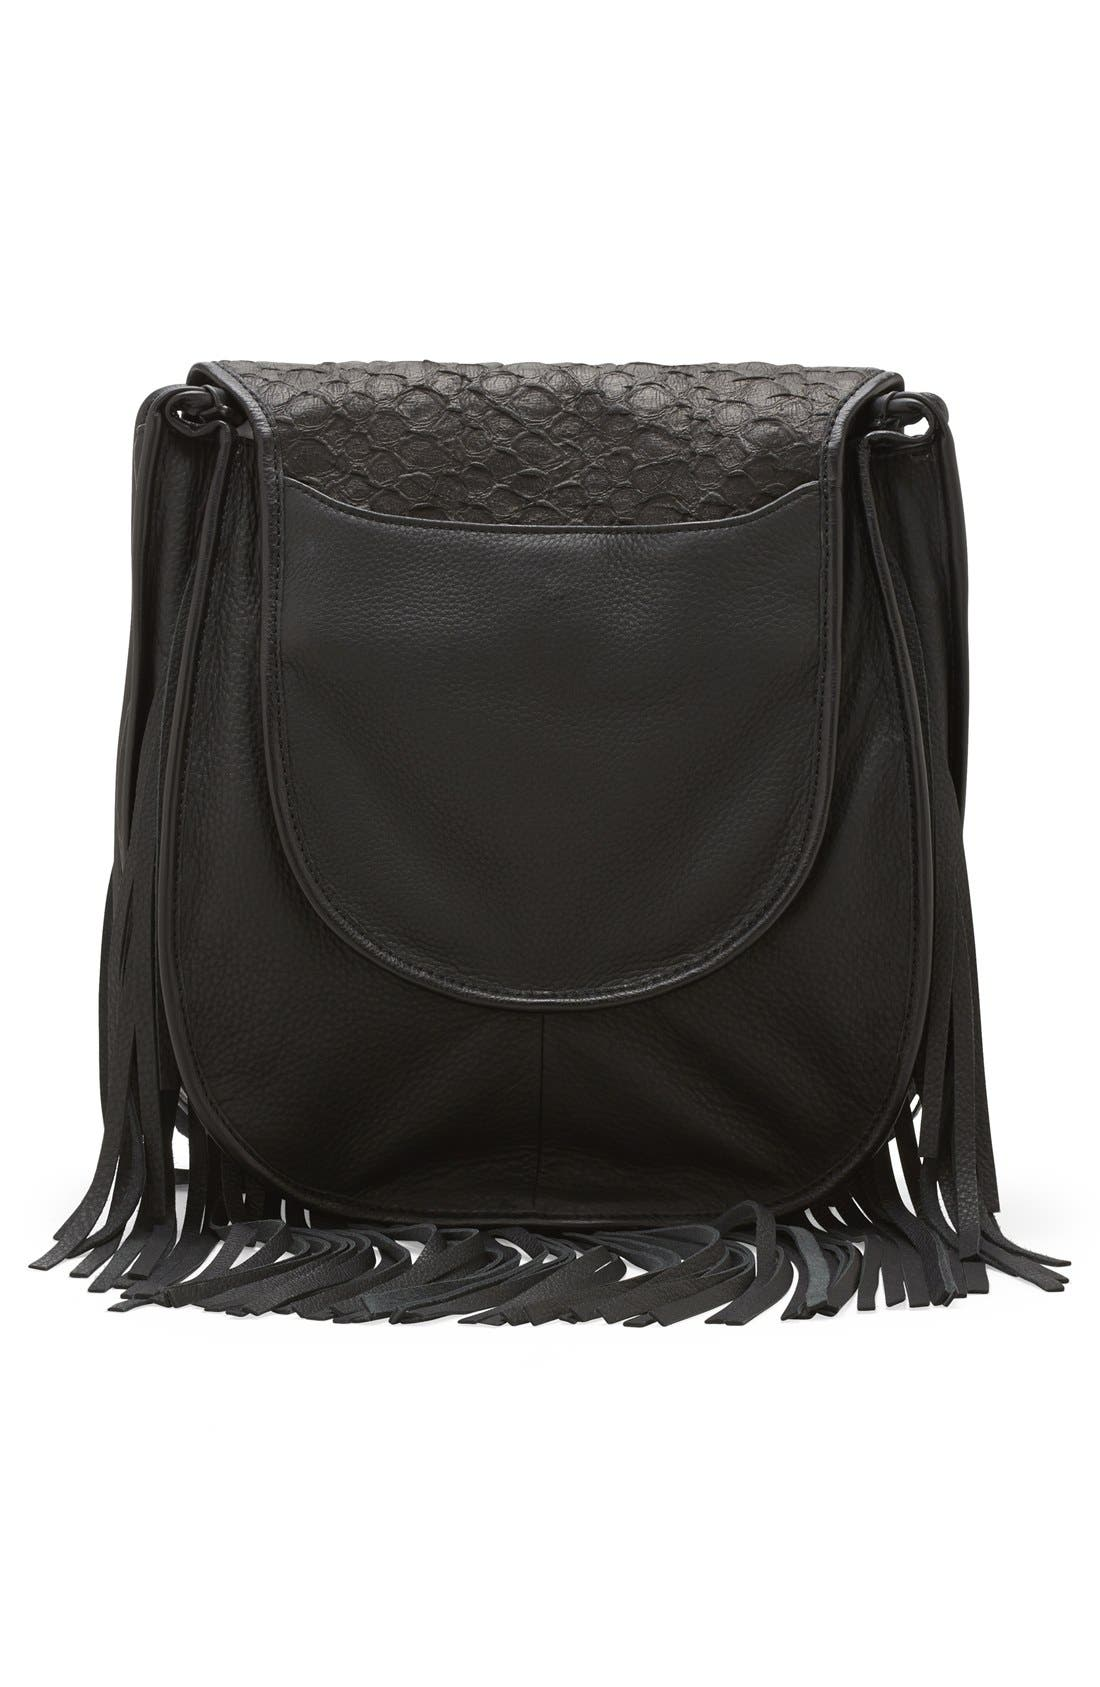 Alternate Image 3  - Vince Camuto 'Andy' Crossbody Bag